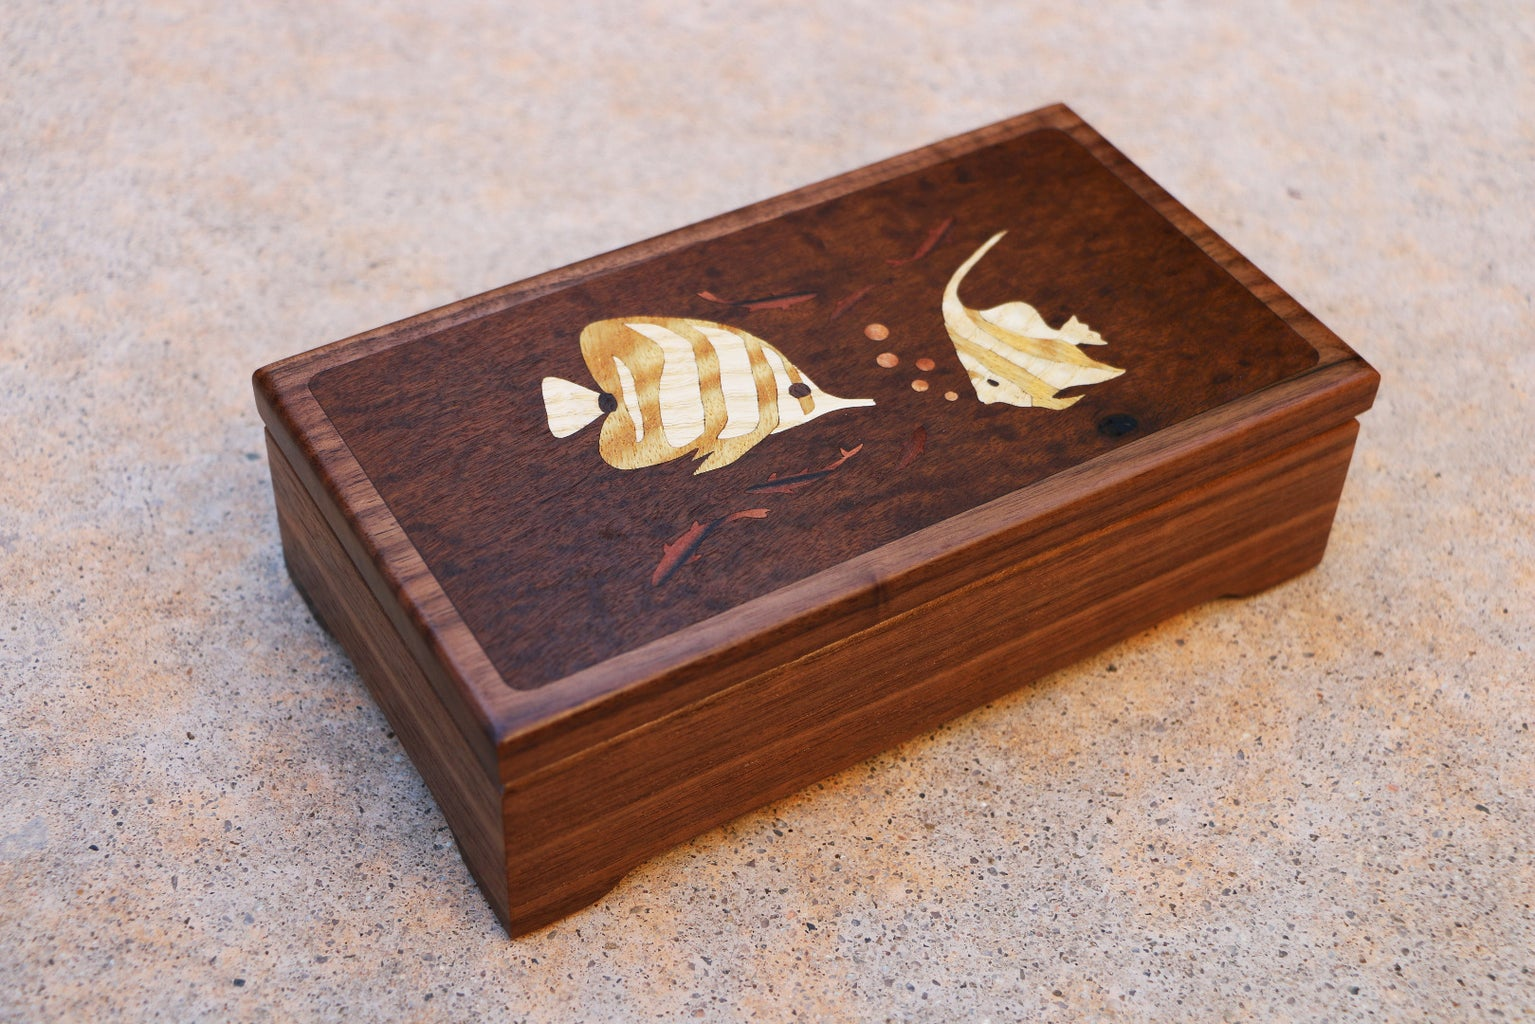 Laser Marquetry & Inlays - Advanced Technique